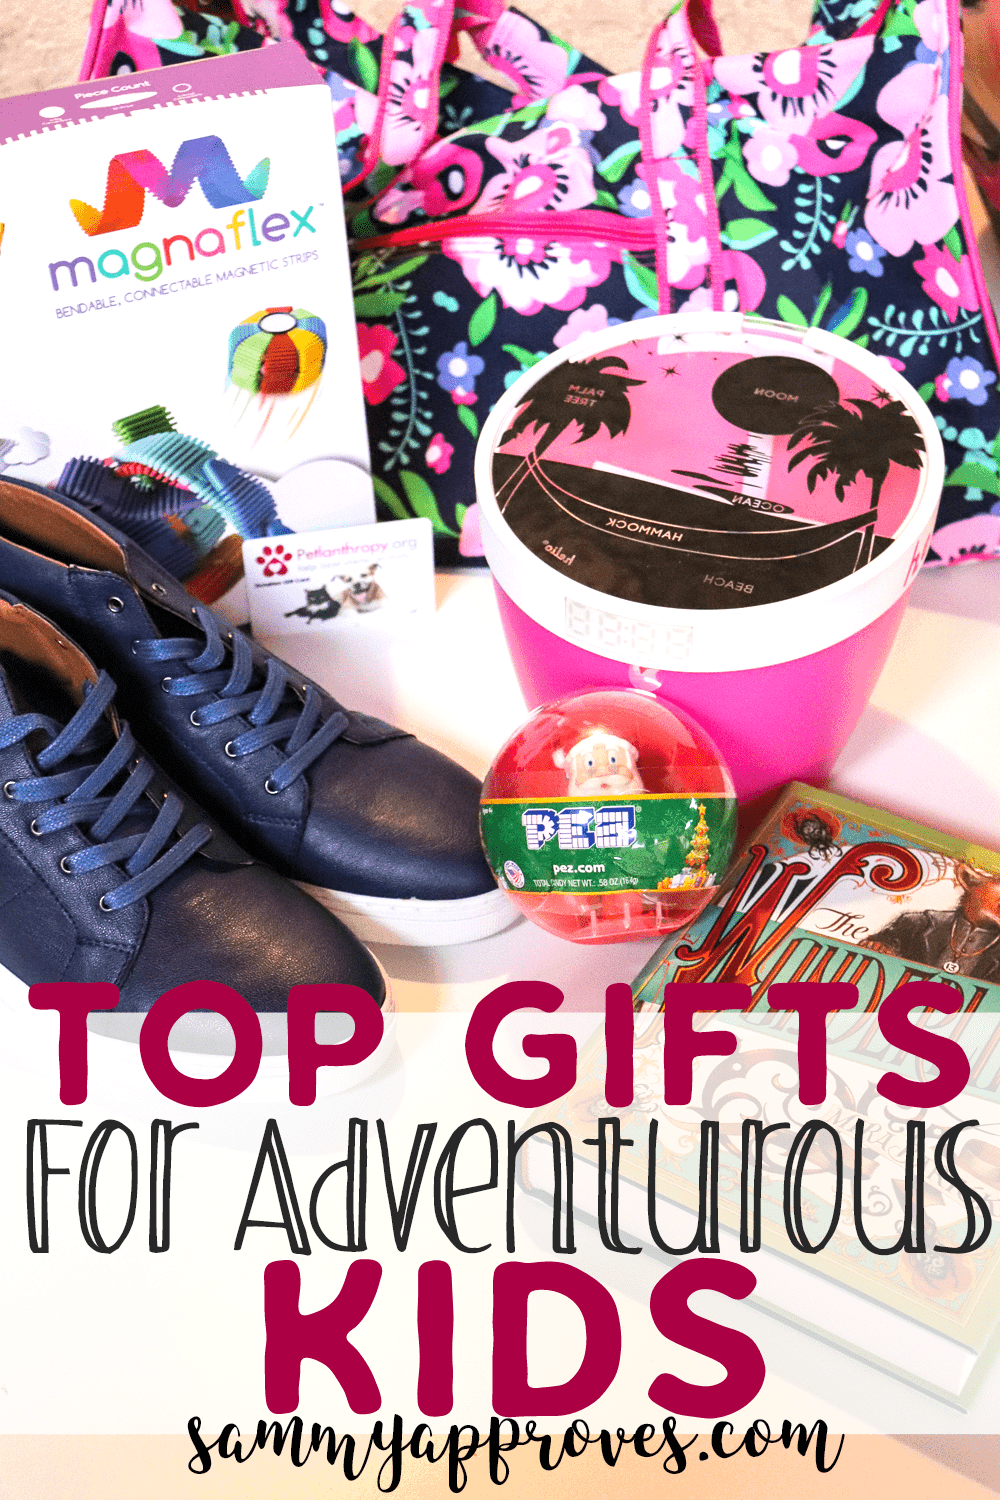 Top Gifts for Adventurous Kids - 2017 Holiday Gift Ideas